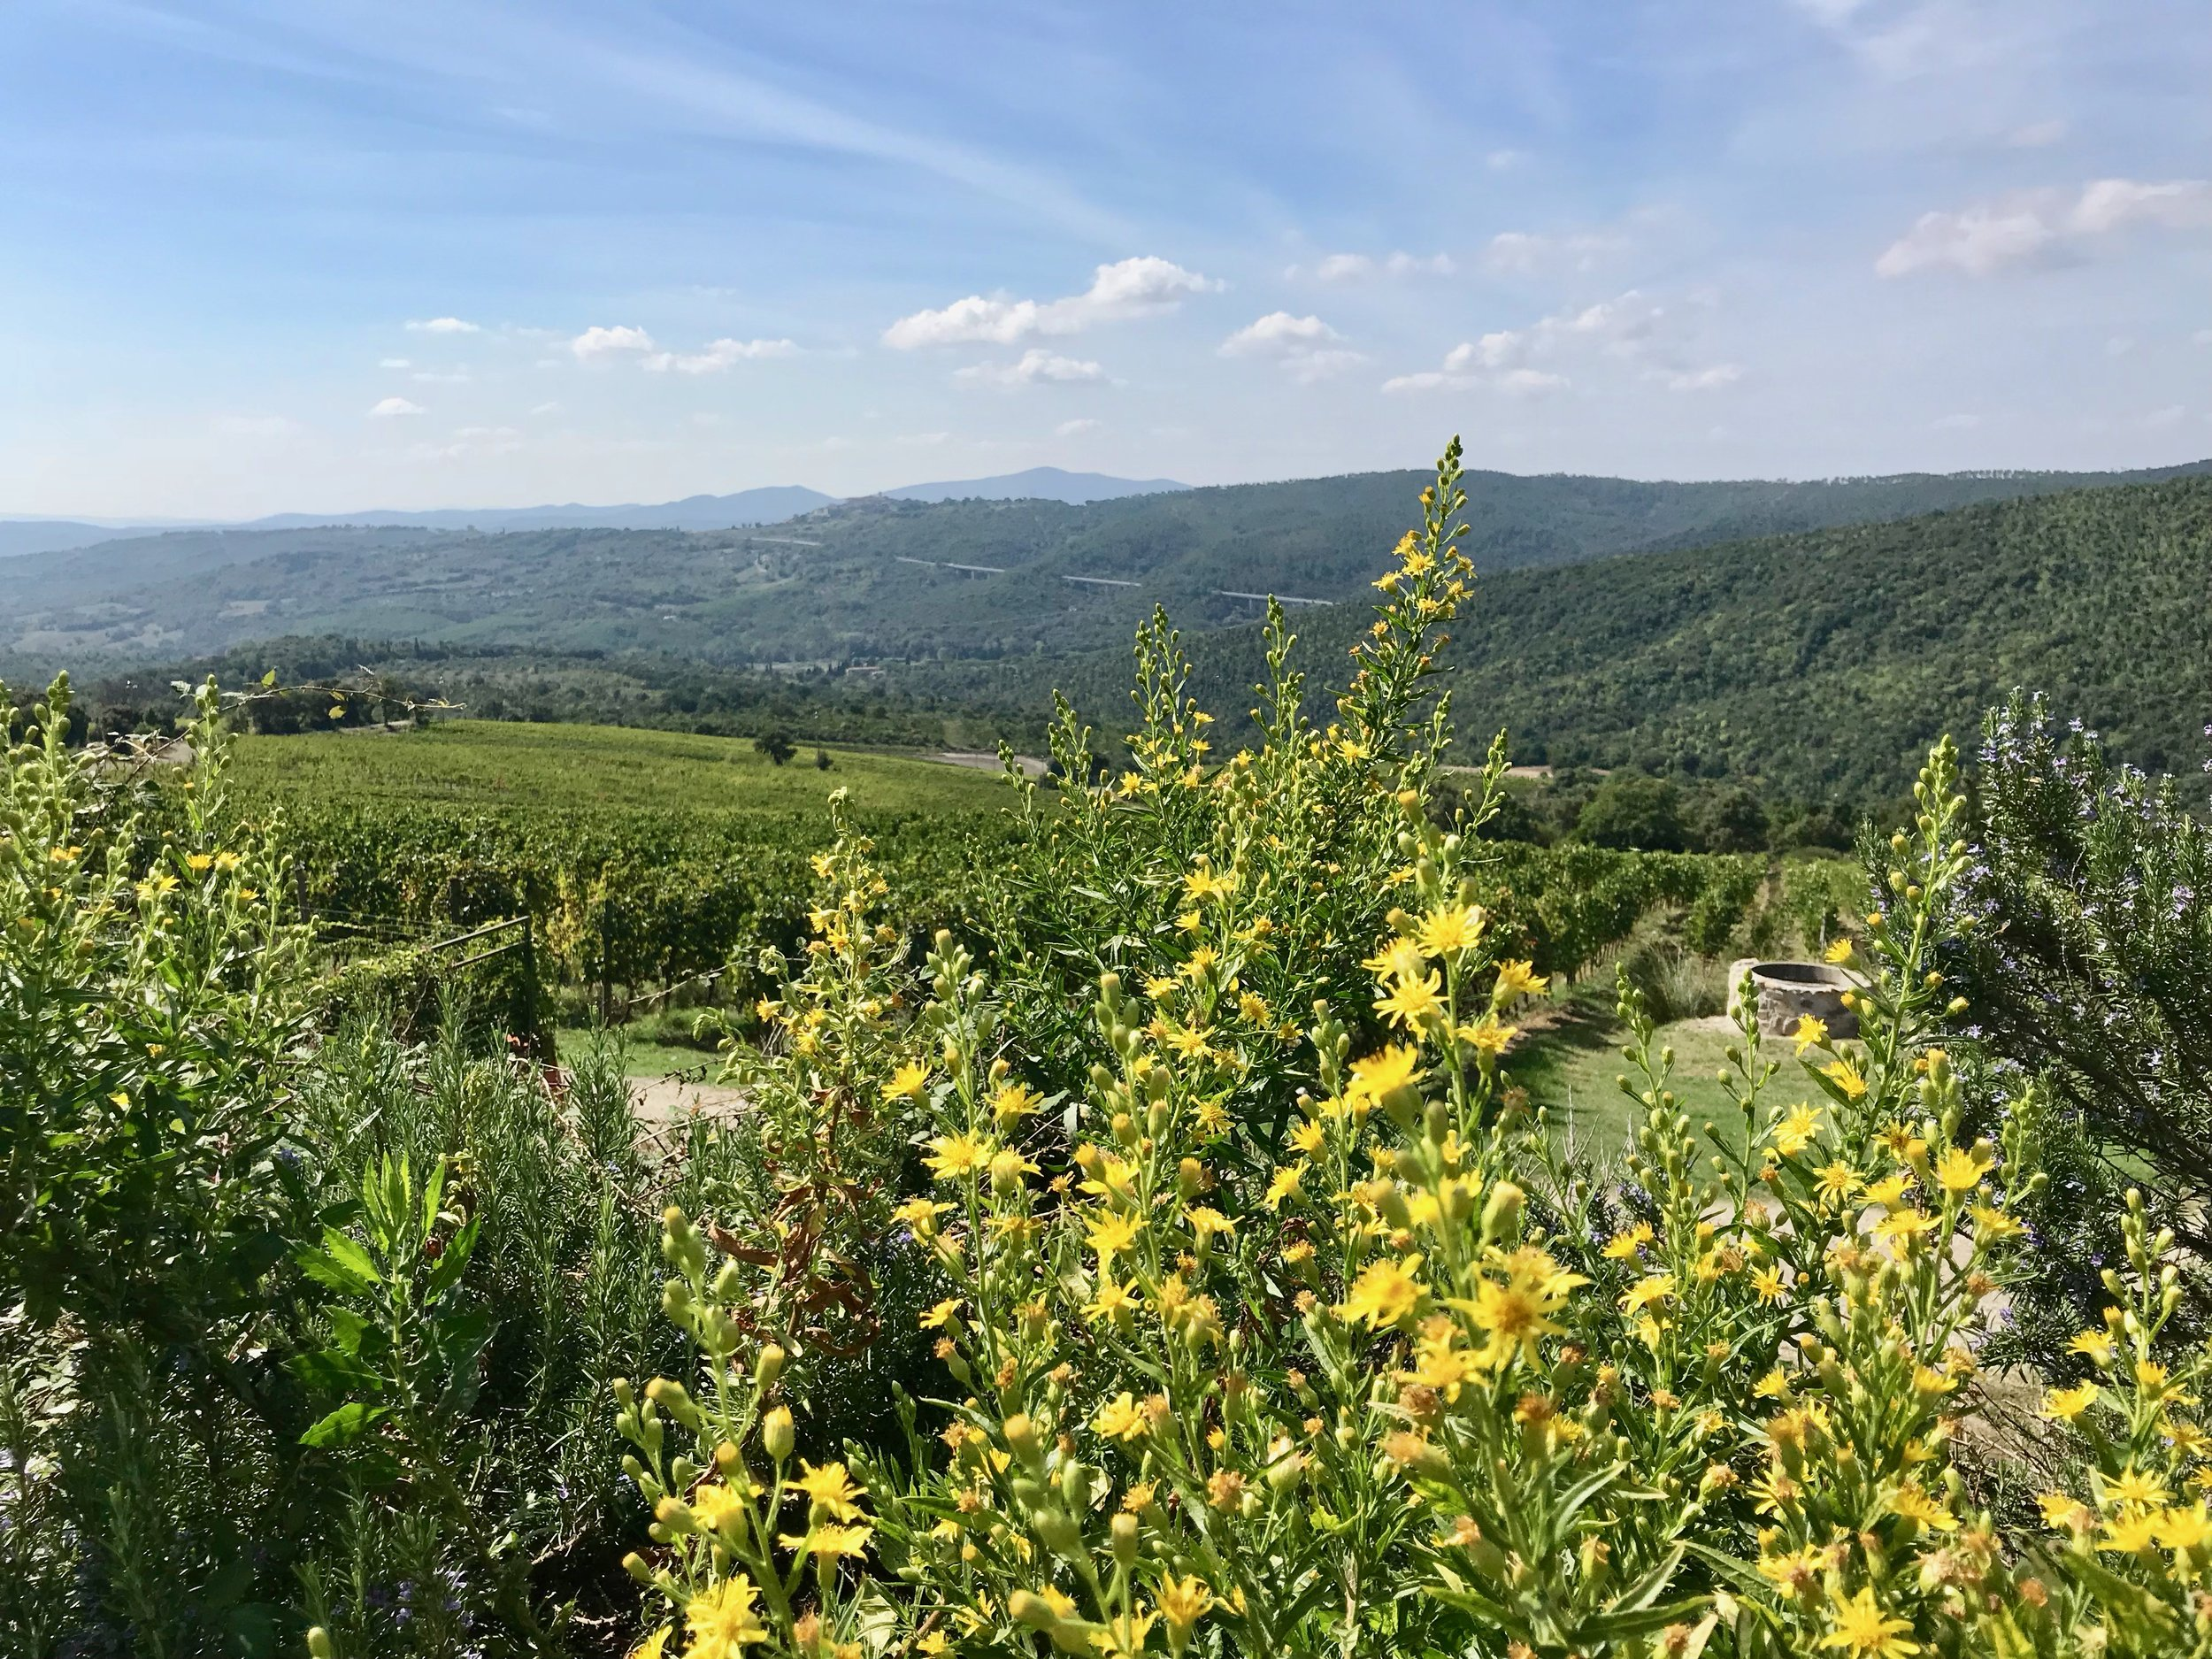 The views from Tenuta L'Impostino. The quality of the Tuscan light is impossible to capture in a photograph.